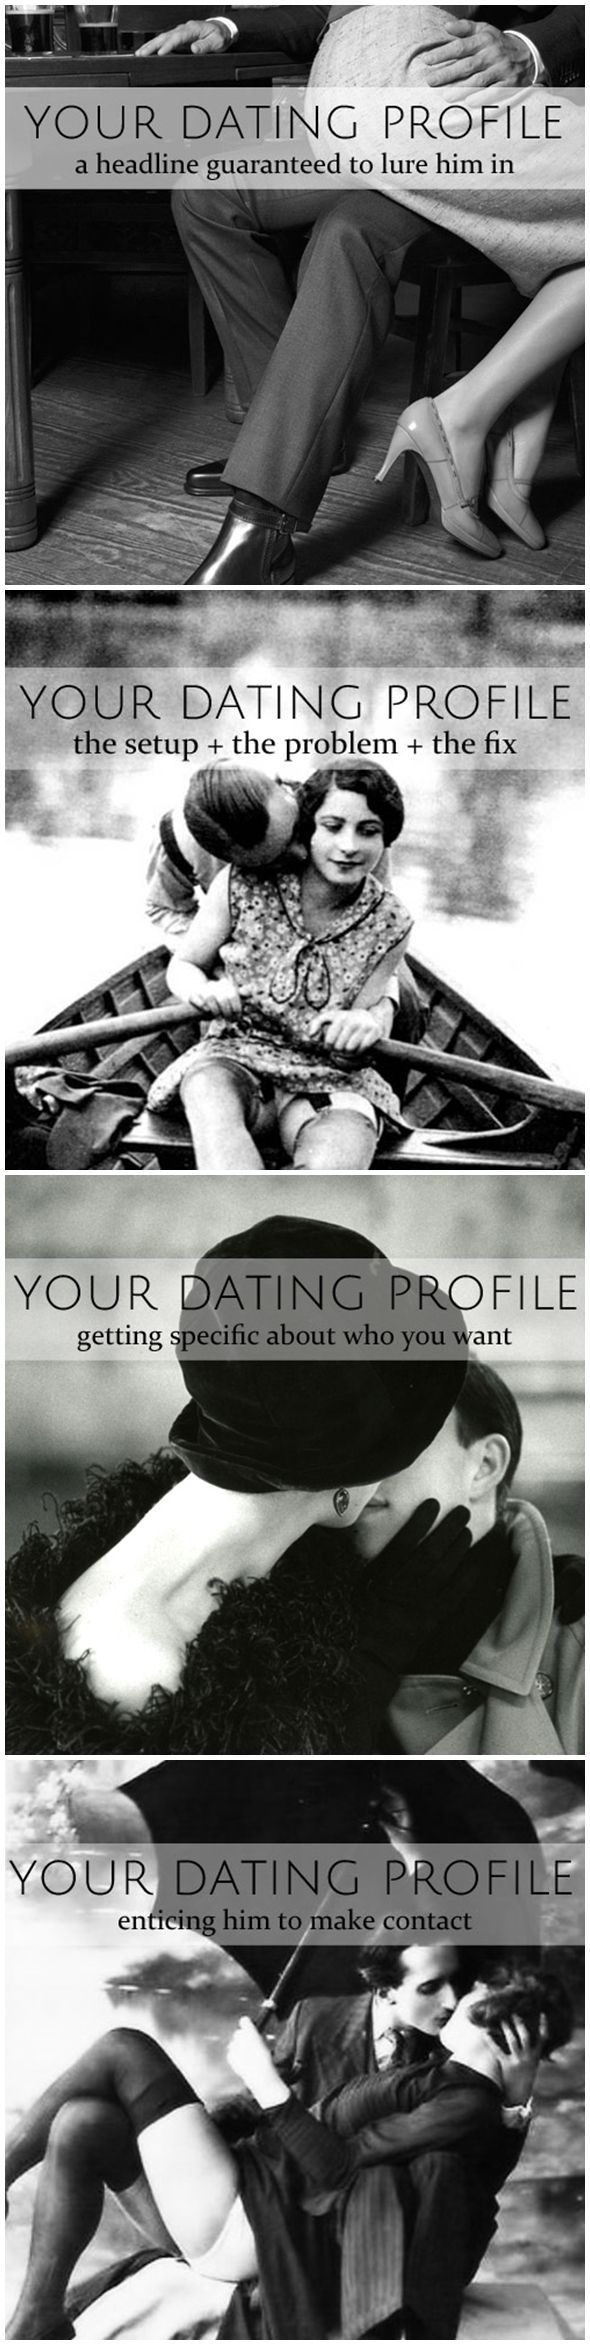 Online dating tips examples